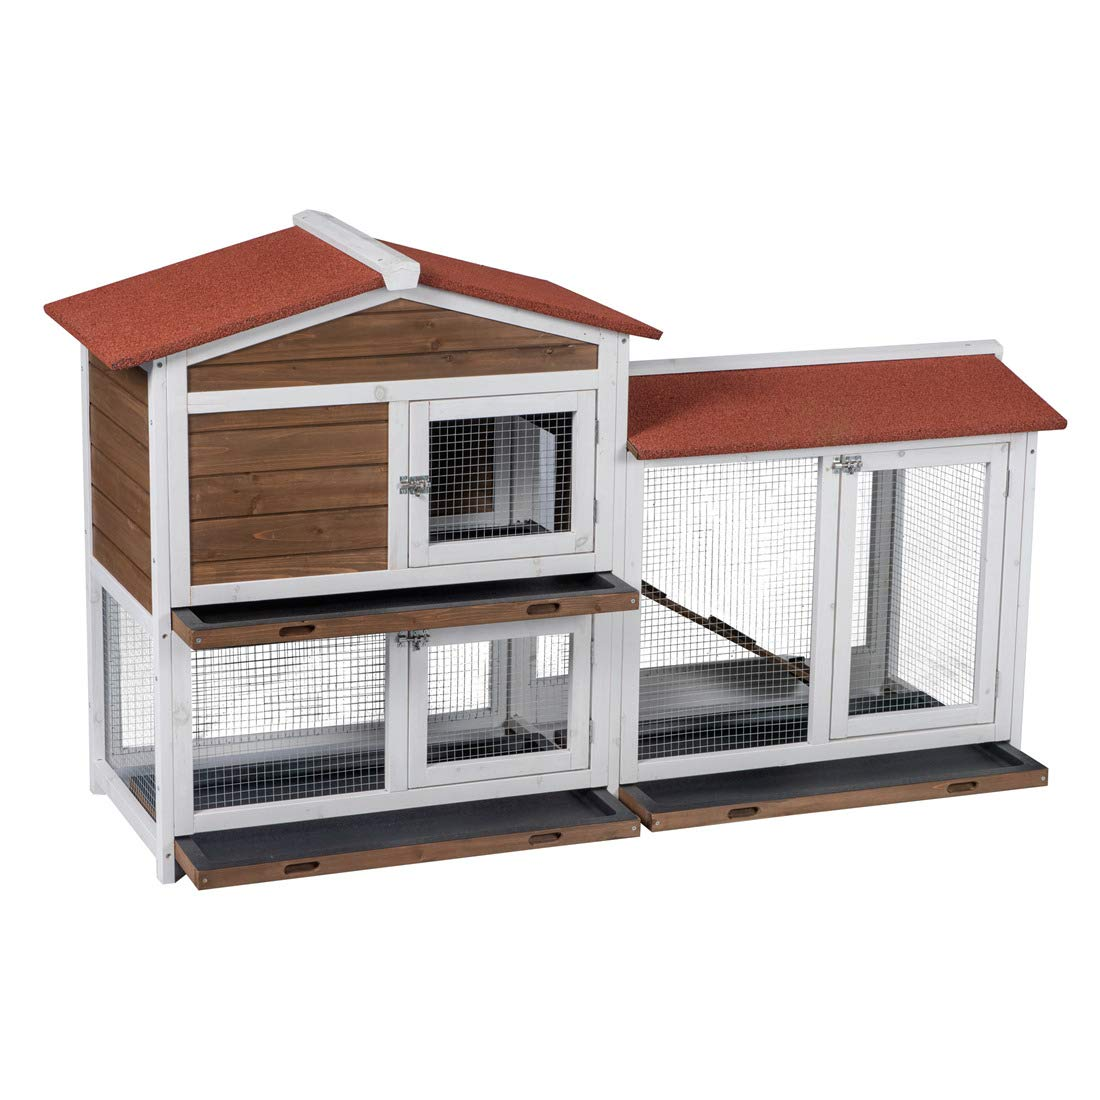 Good Life Two Floors Wooden Outdoor Indoor Roof Waterproof Bunny Hutch Rabbit Cage Guinea Pig Coop PET House for Small to Middle Animals with Stairs and 3 Cleaning Tray by GOOD LIFE USA